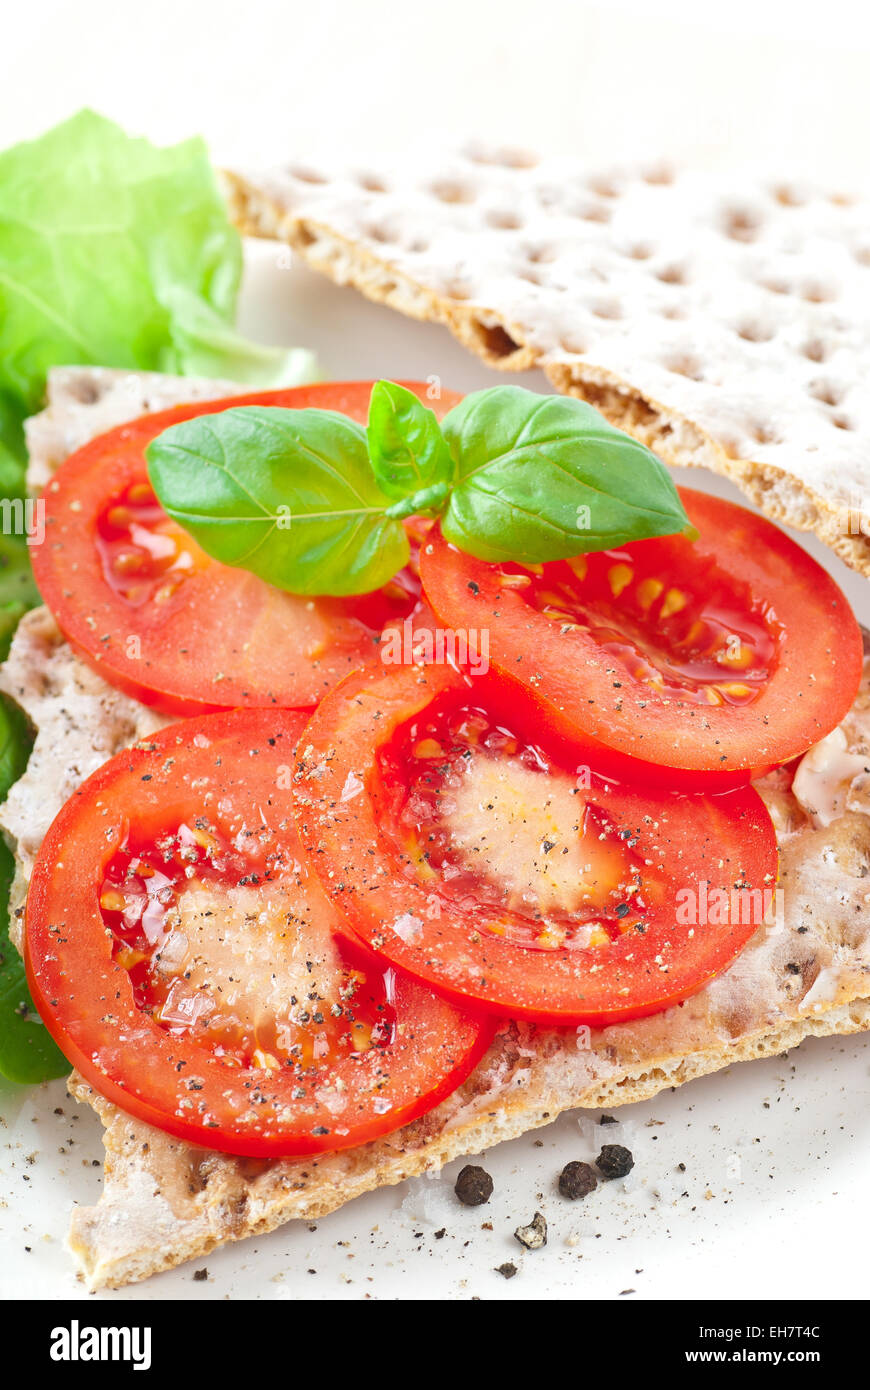 Crispbread with tomato slices. Spiced with sea salt and black pepper. - Stock Image